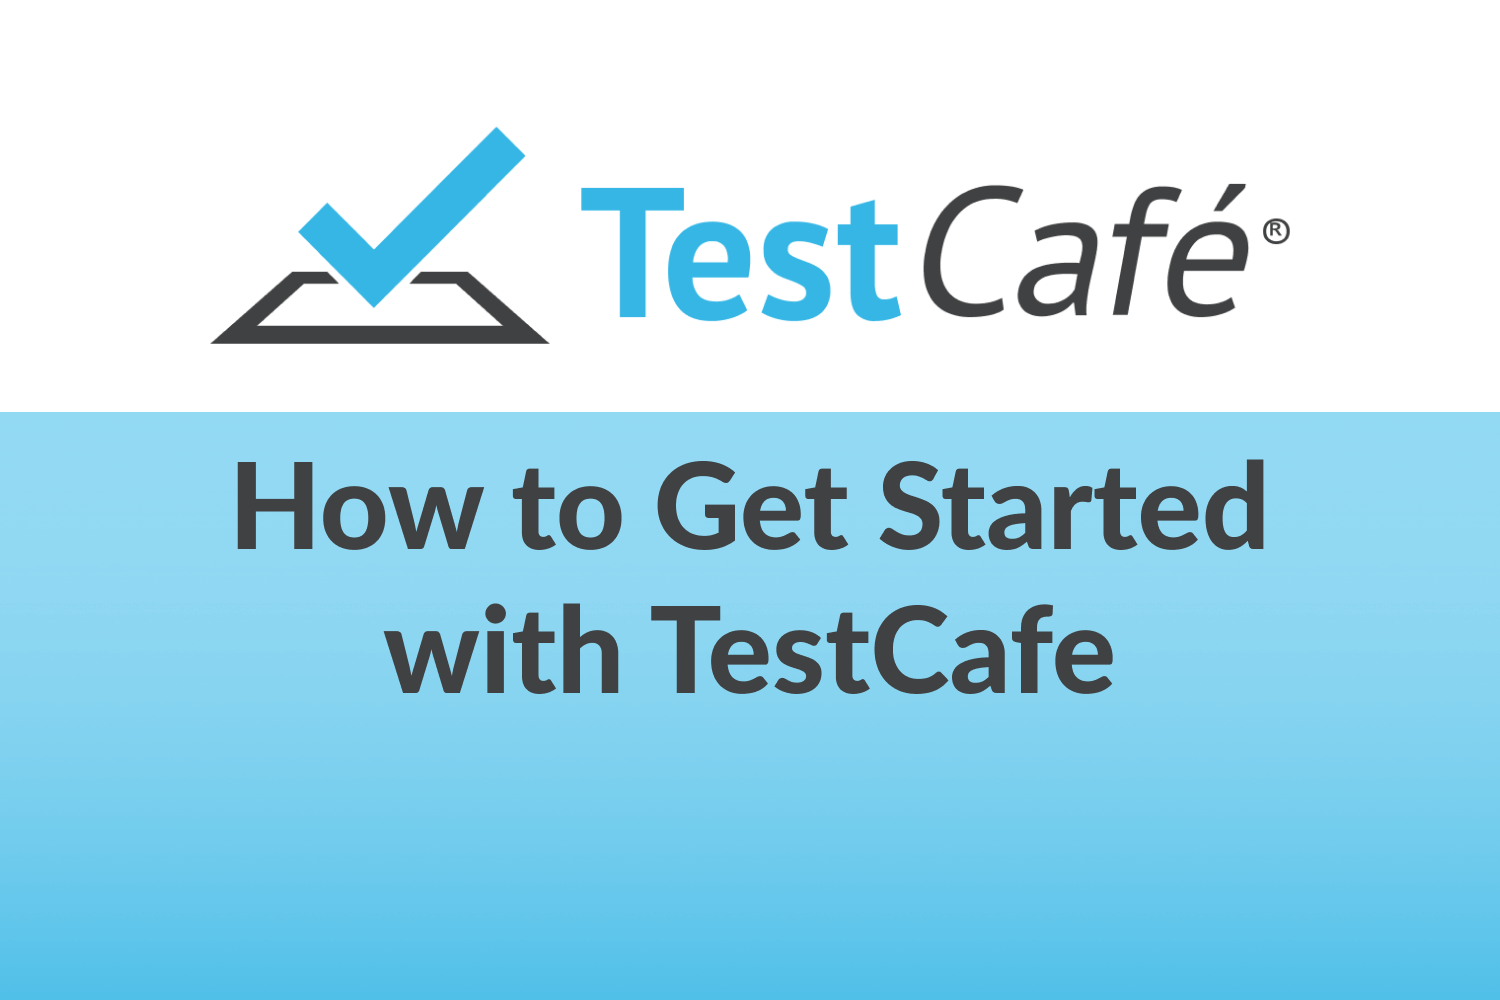 How to Get Started with TestCafe